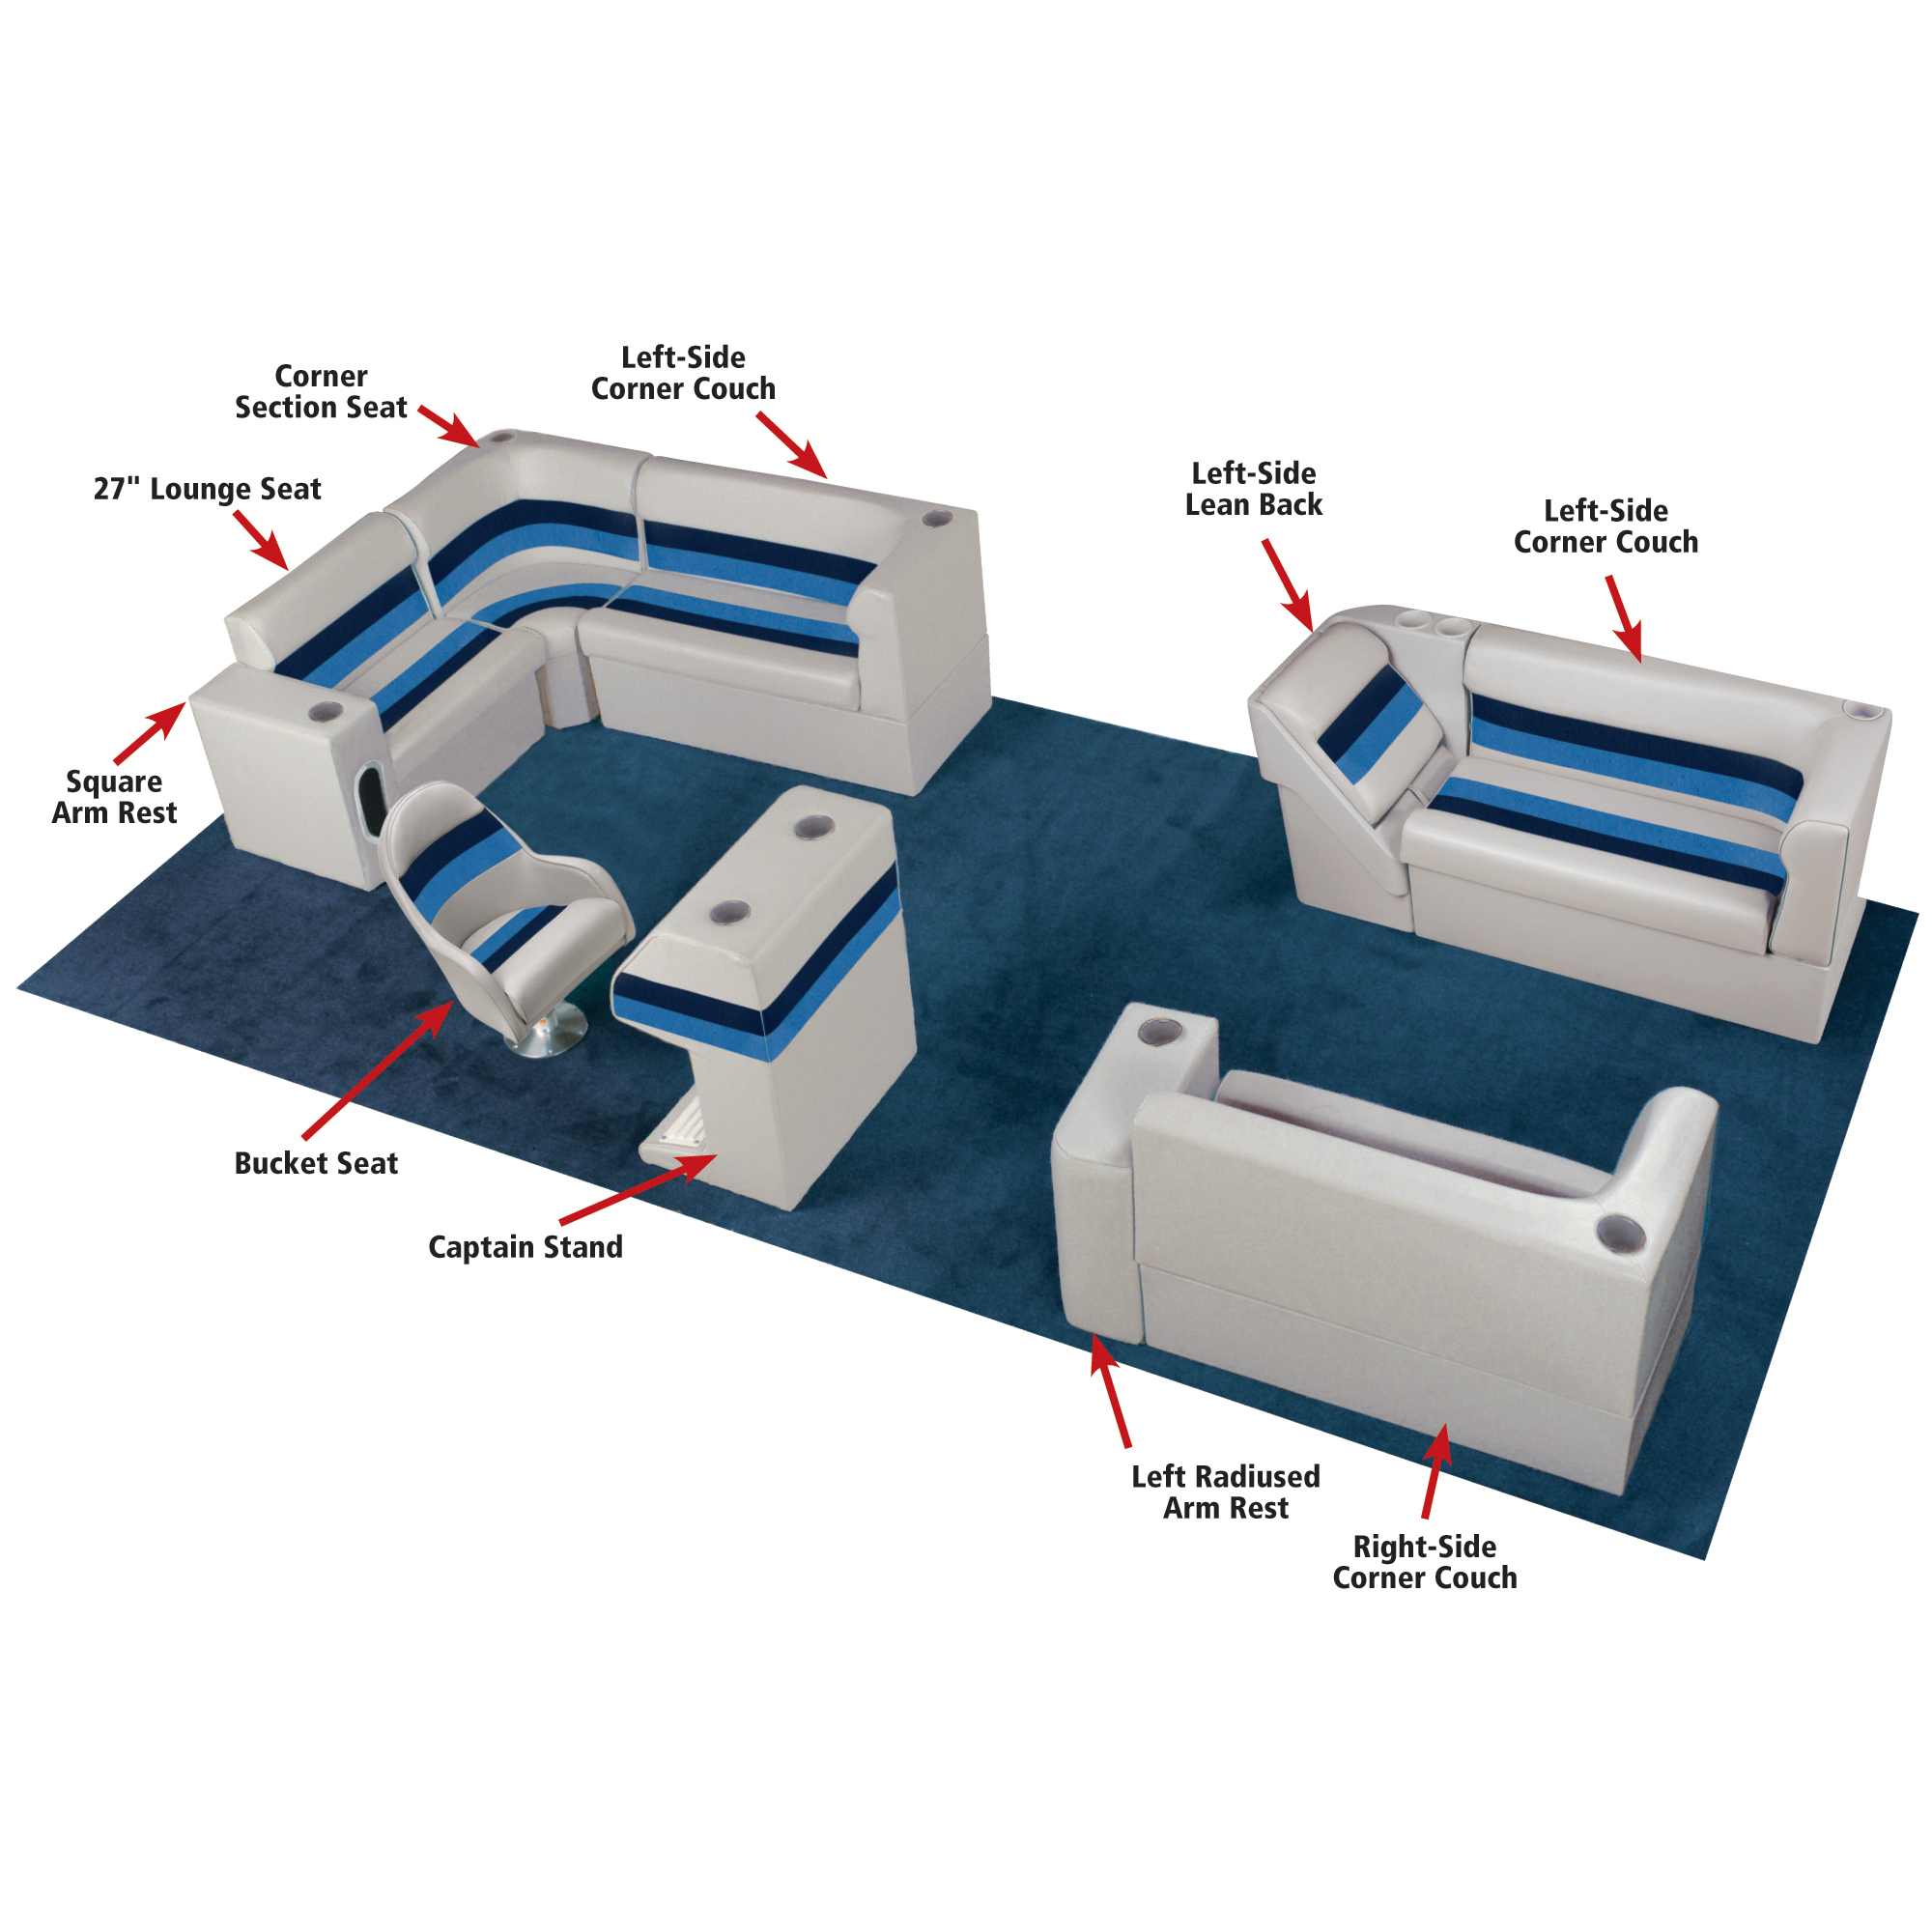 Toonmate Deluxe Pontoon Corner Couch w/Classic Base(no toe kick) Right Side Whit